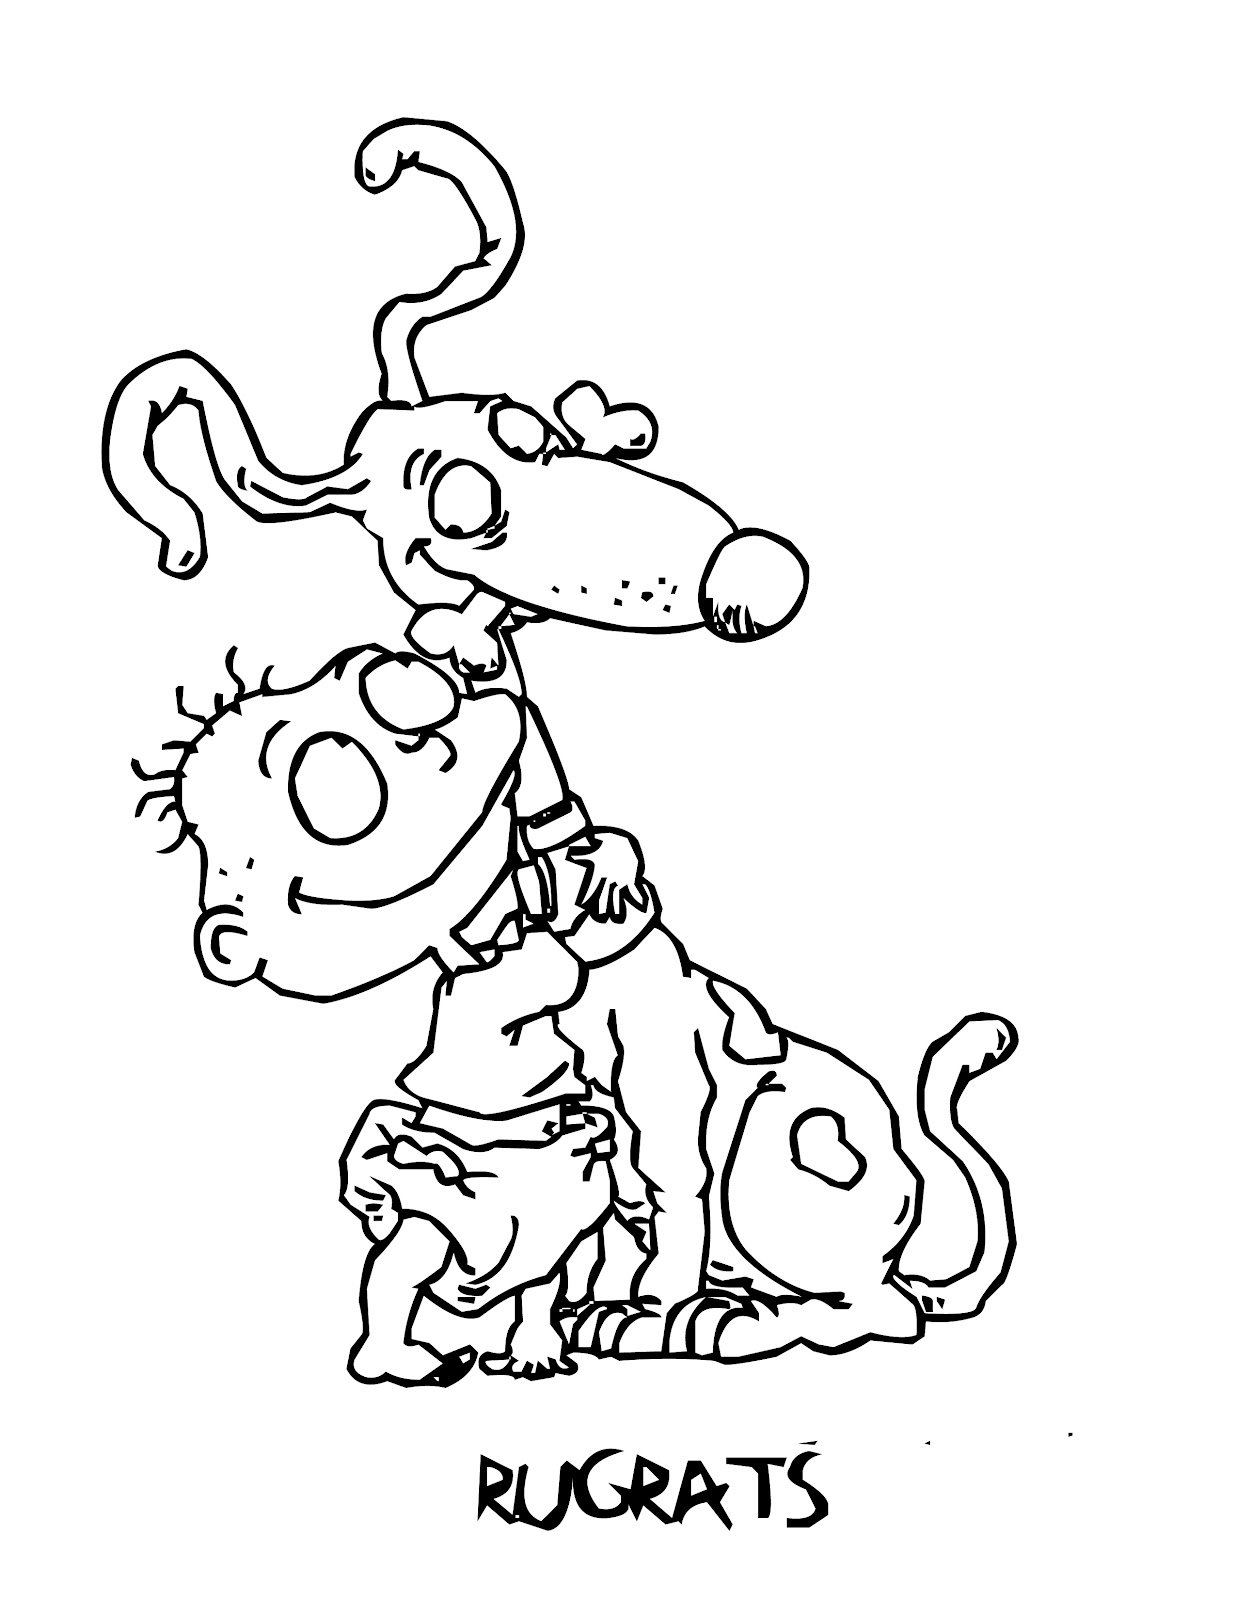 rugrats coloring page pictures - Rugrats Characters Coloring Pages